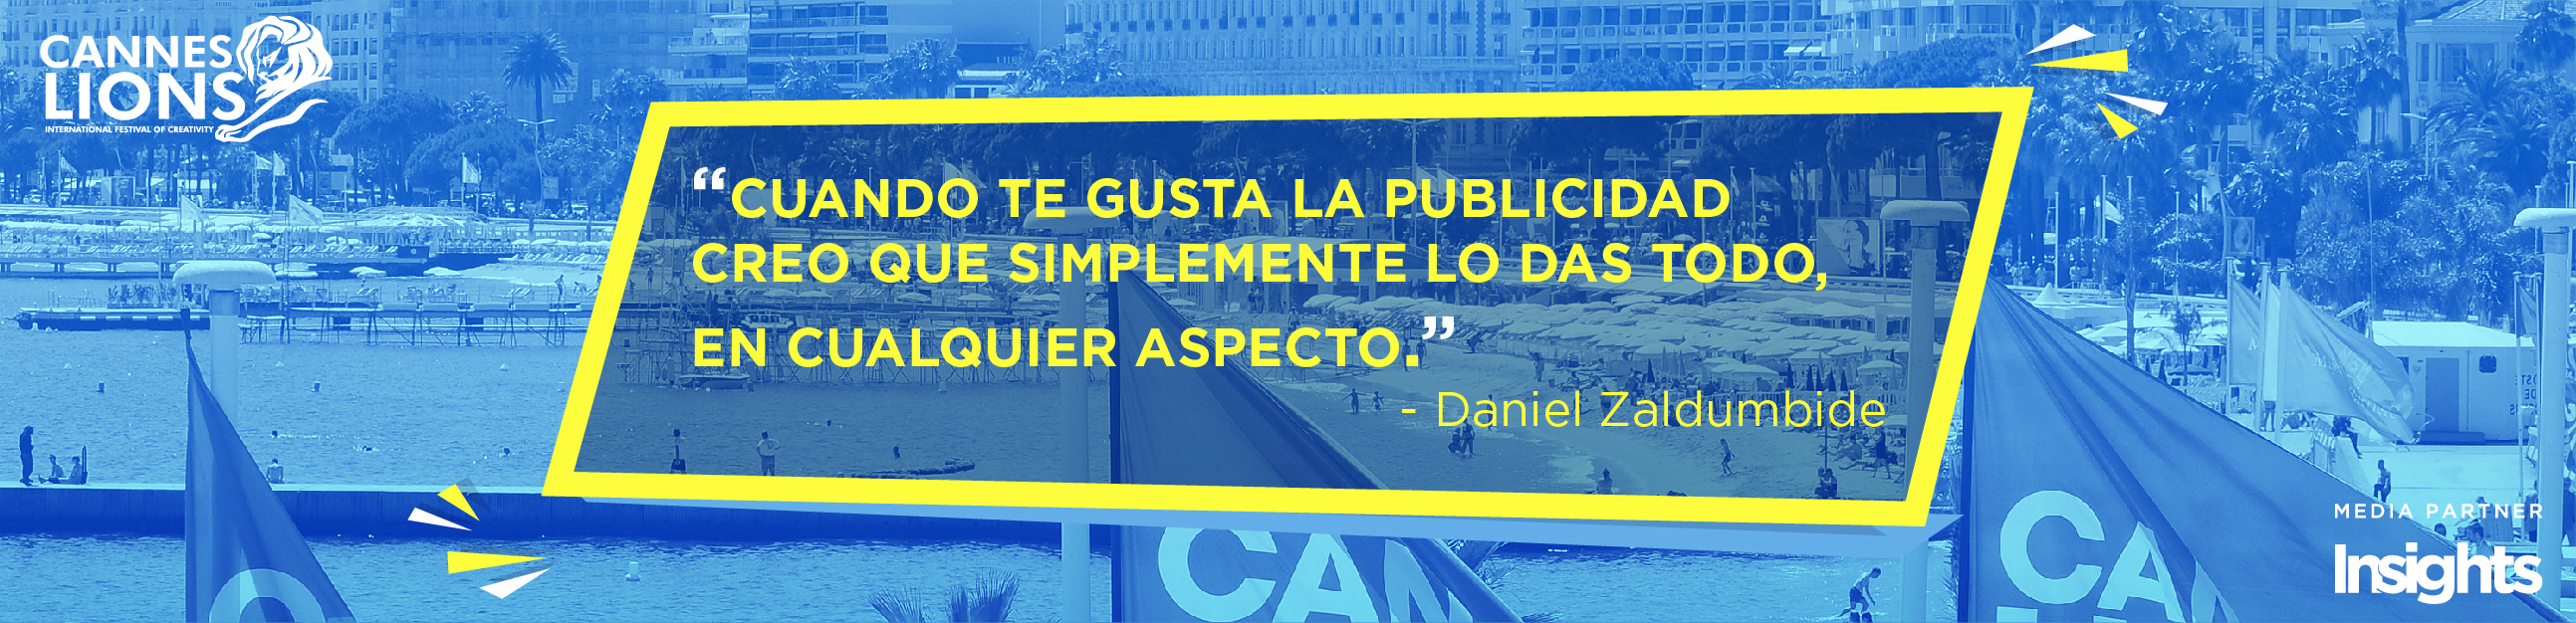 Cannes Lions Quotes -01